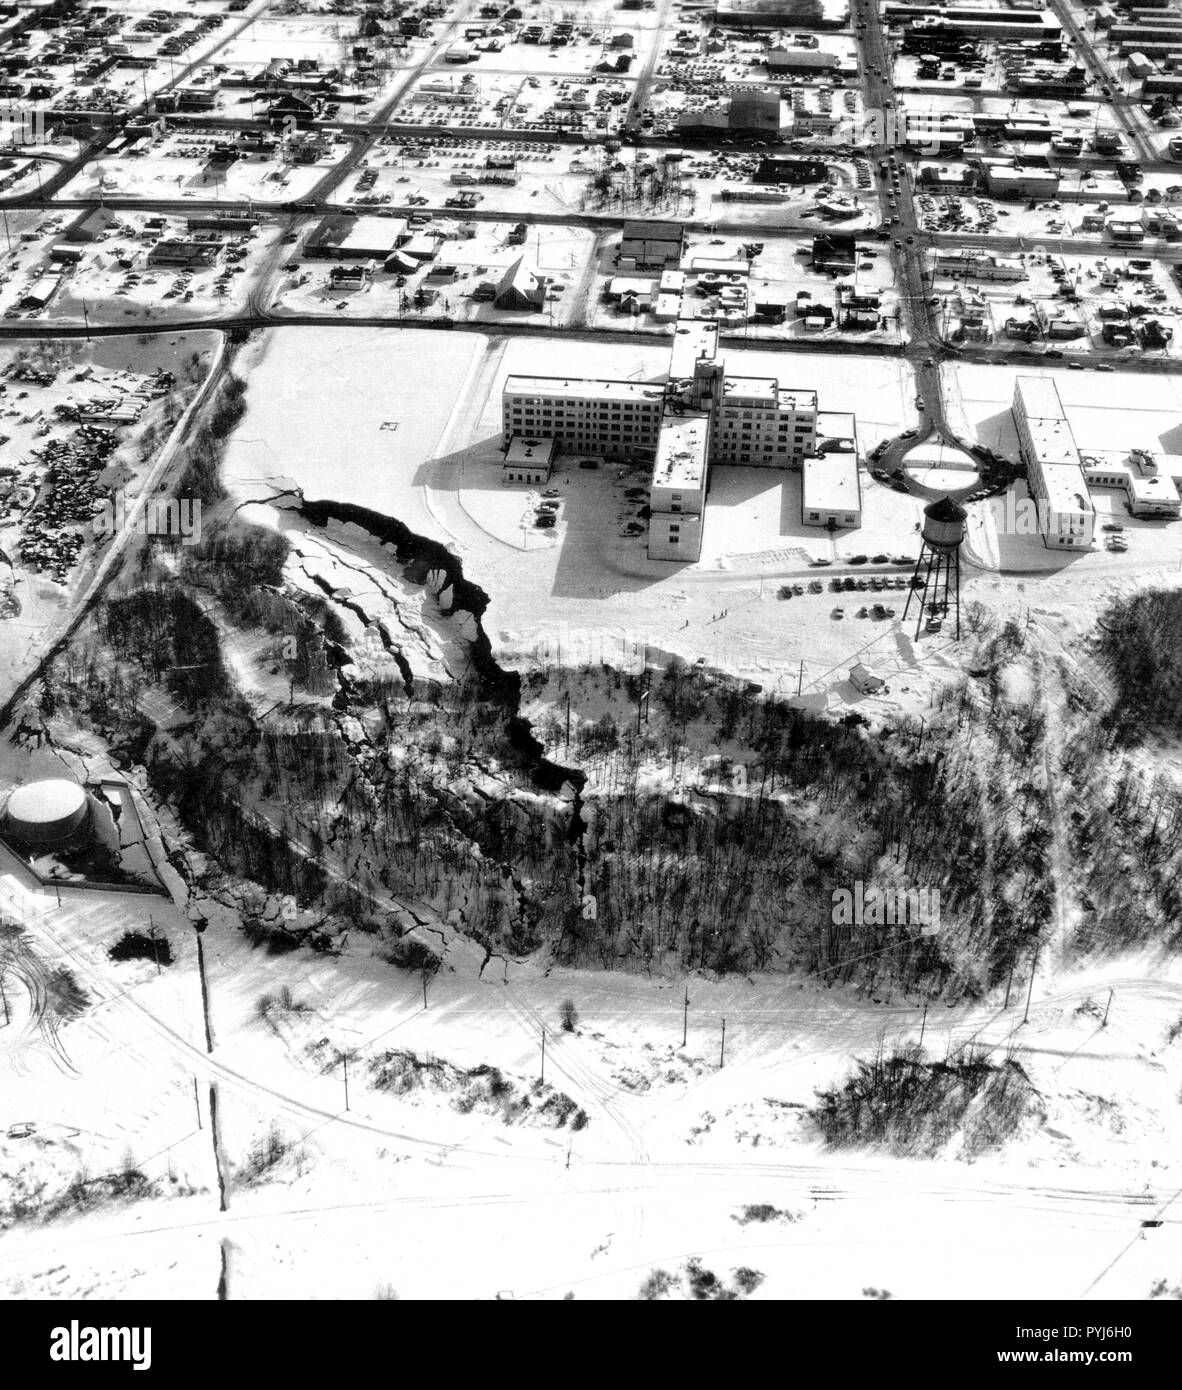 March 27, 1964 Alaska earthquake. The landslide occurred next to this hospital in Anchorage which is showing graben and pressure ridges. - Stock Image